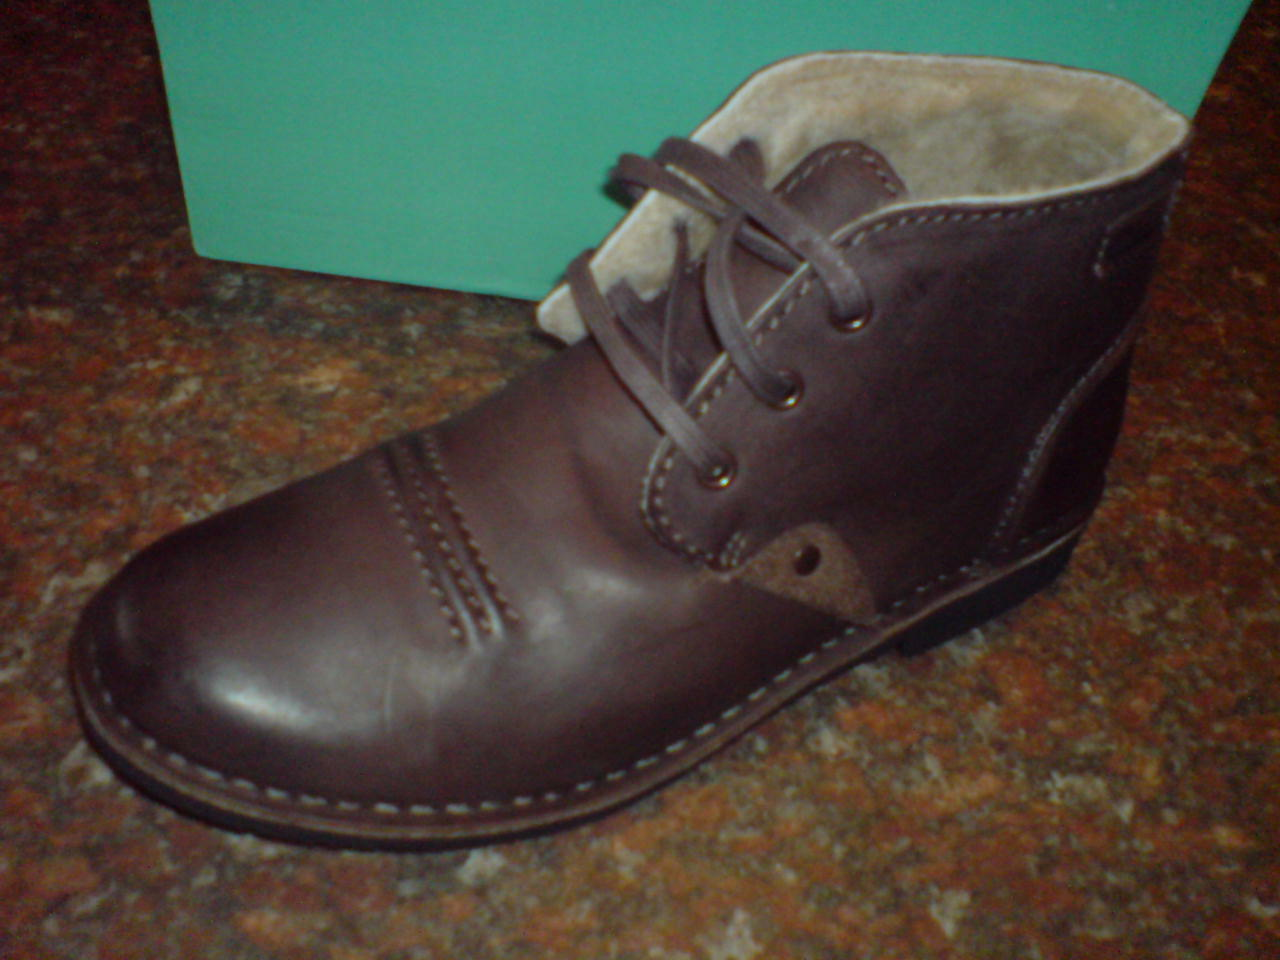 Clarks Mix  Herren  Motive Mix Clarks Stiefel    Warm Lining 54% WOOL   UK 10 / US 11 G 389aca